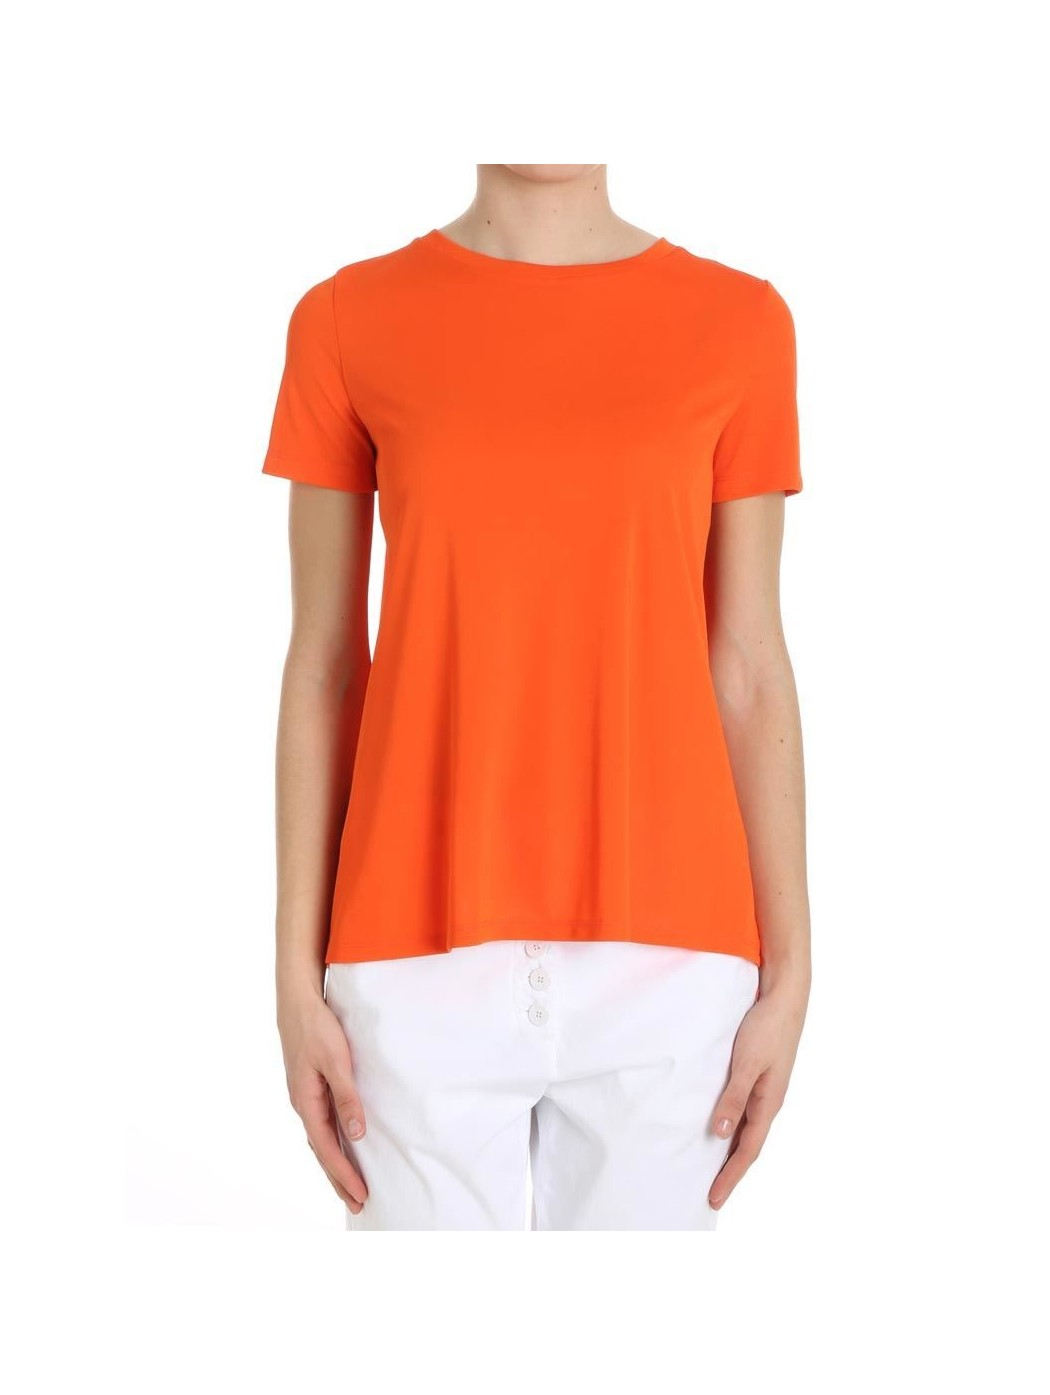 DONDUP S714 200 T-SHIRT